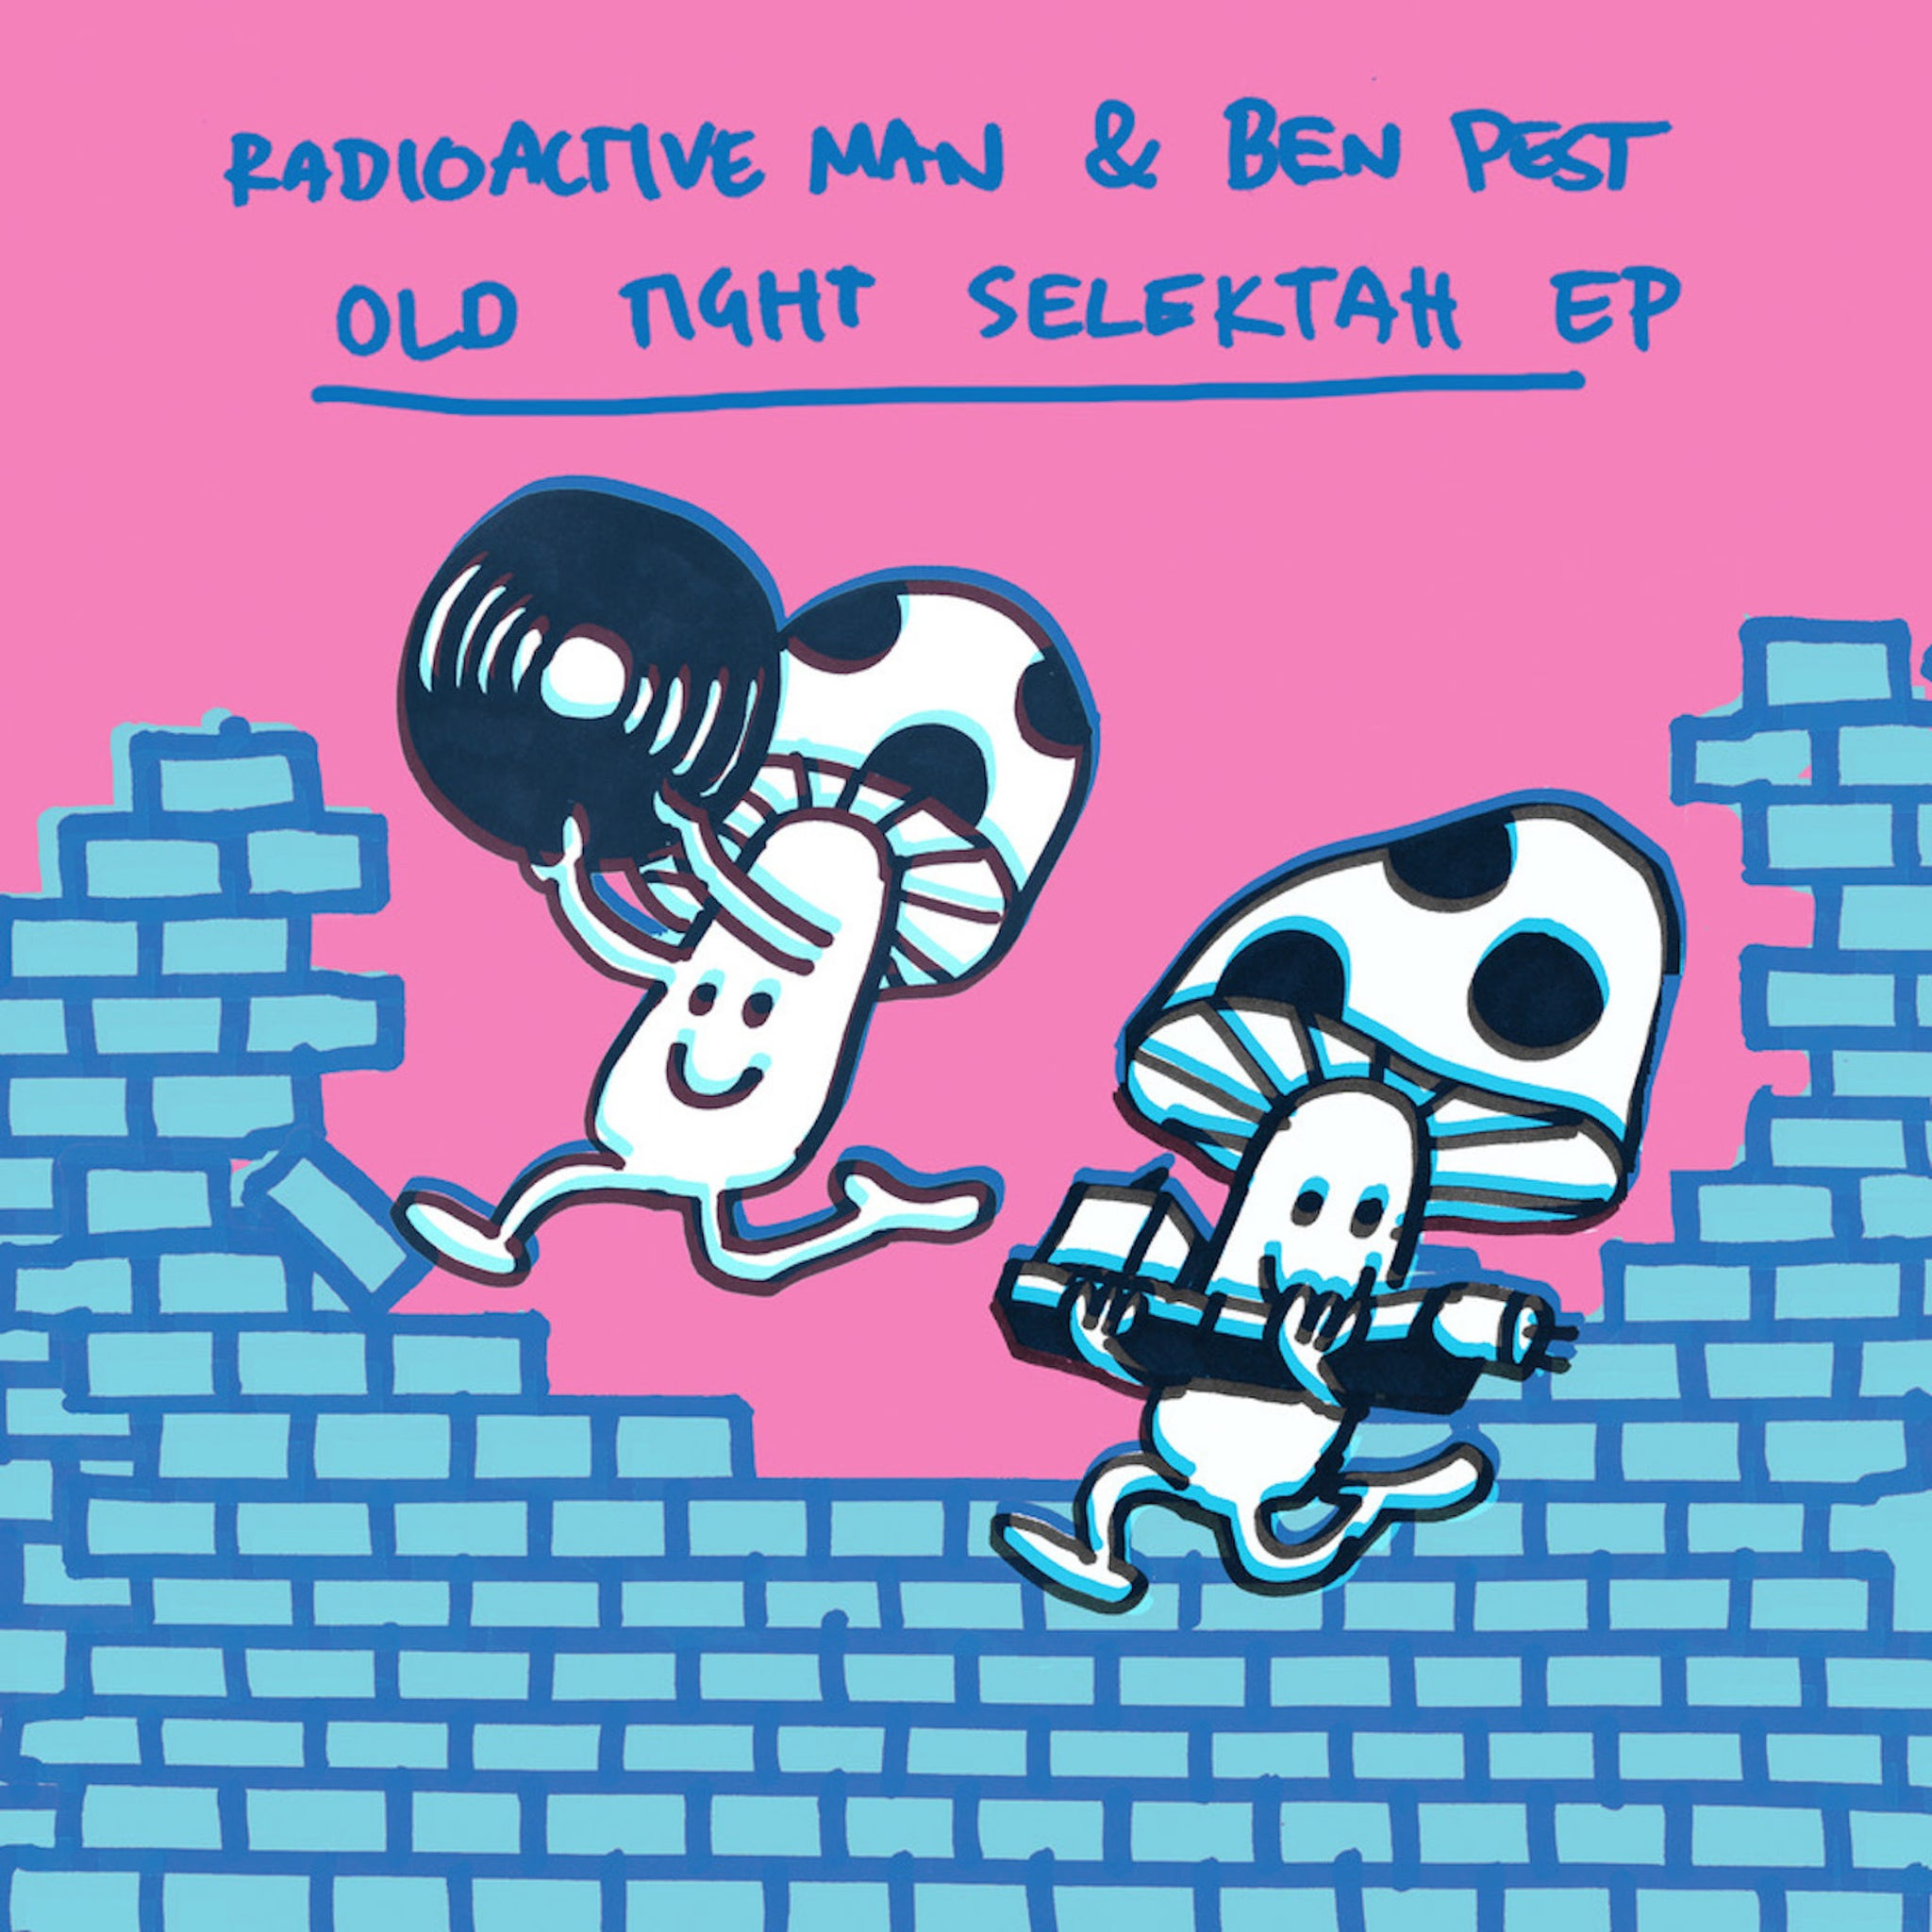 Radioactive Man & Ben Pest 'Old Tight Selektah EP' 12""